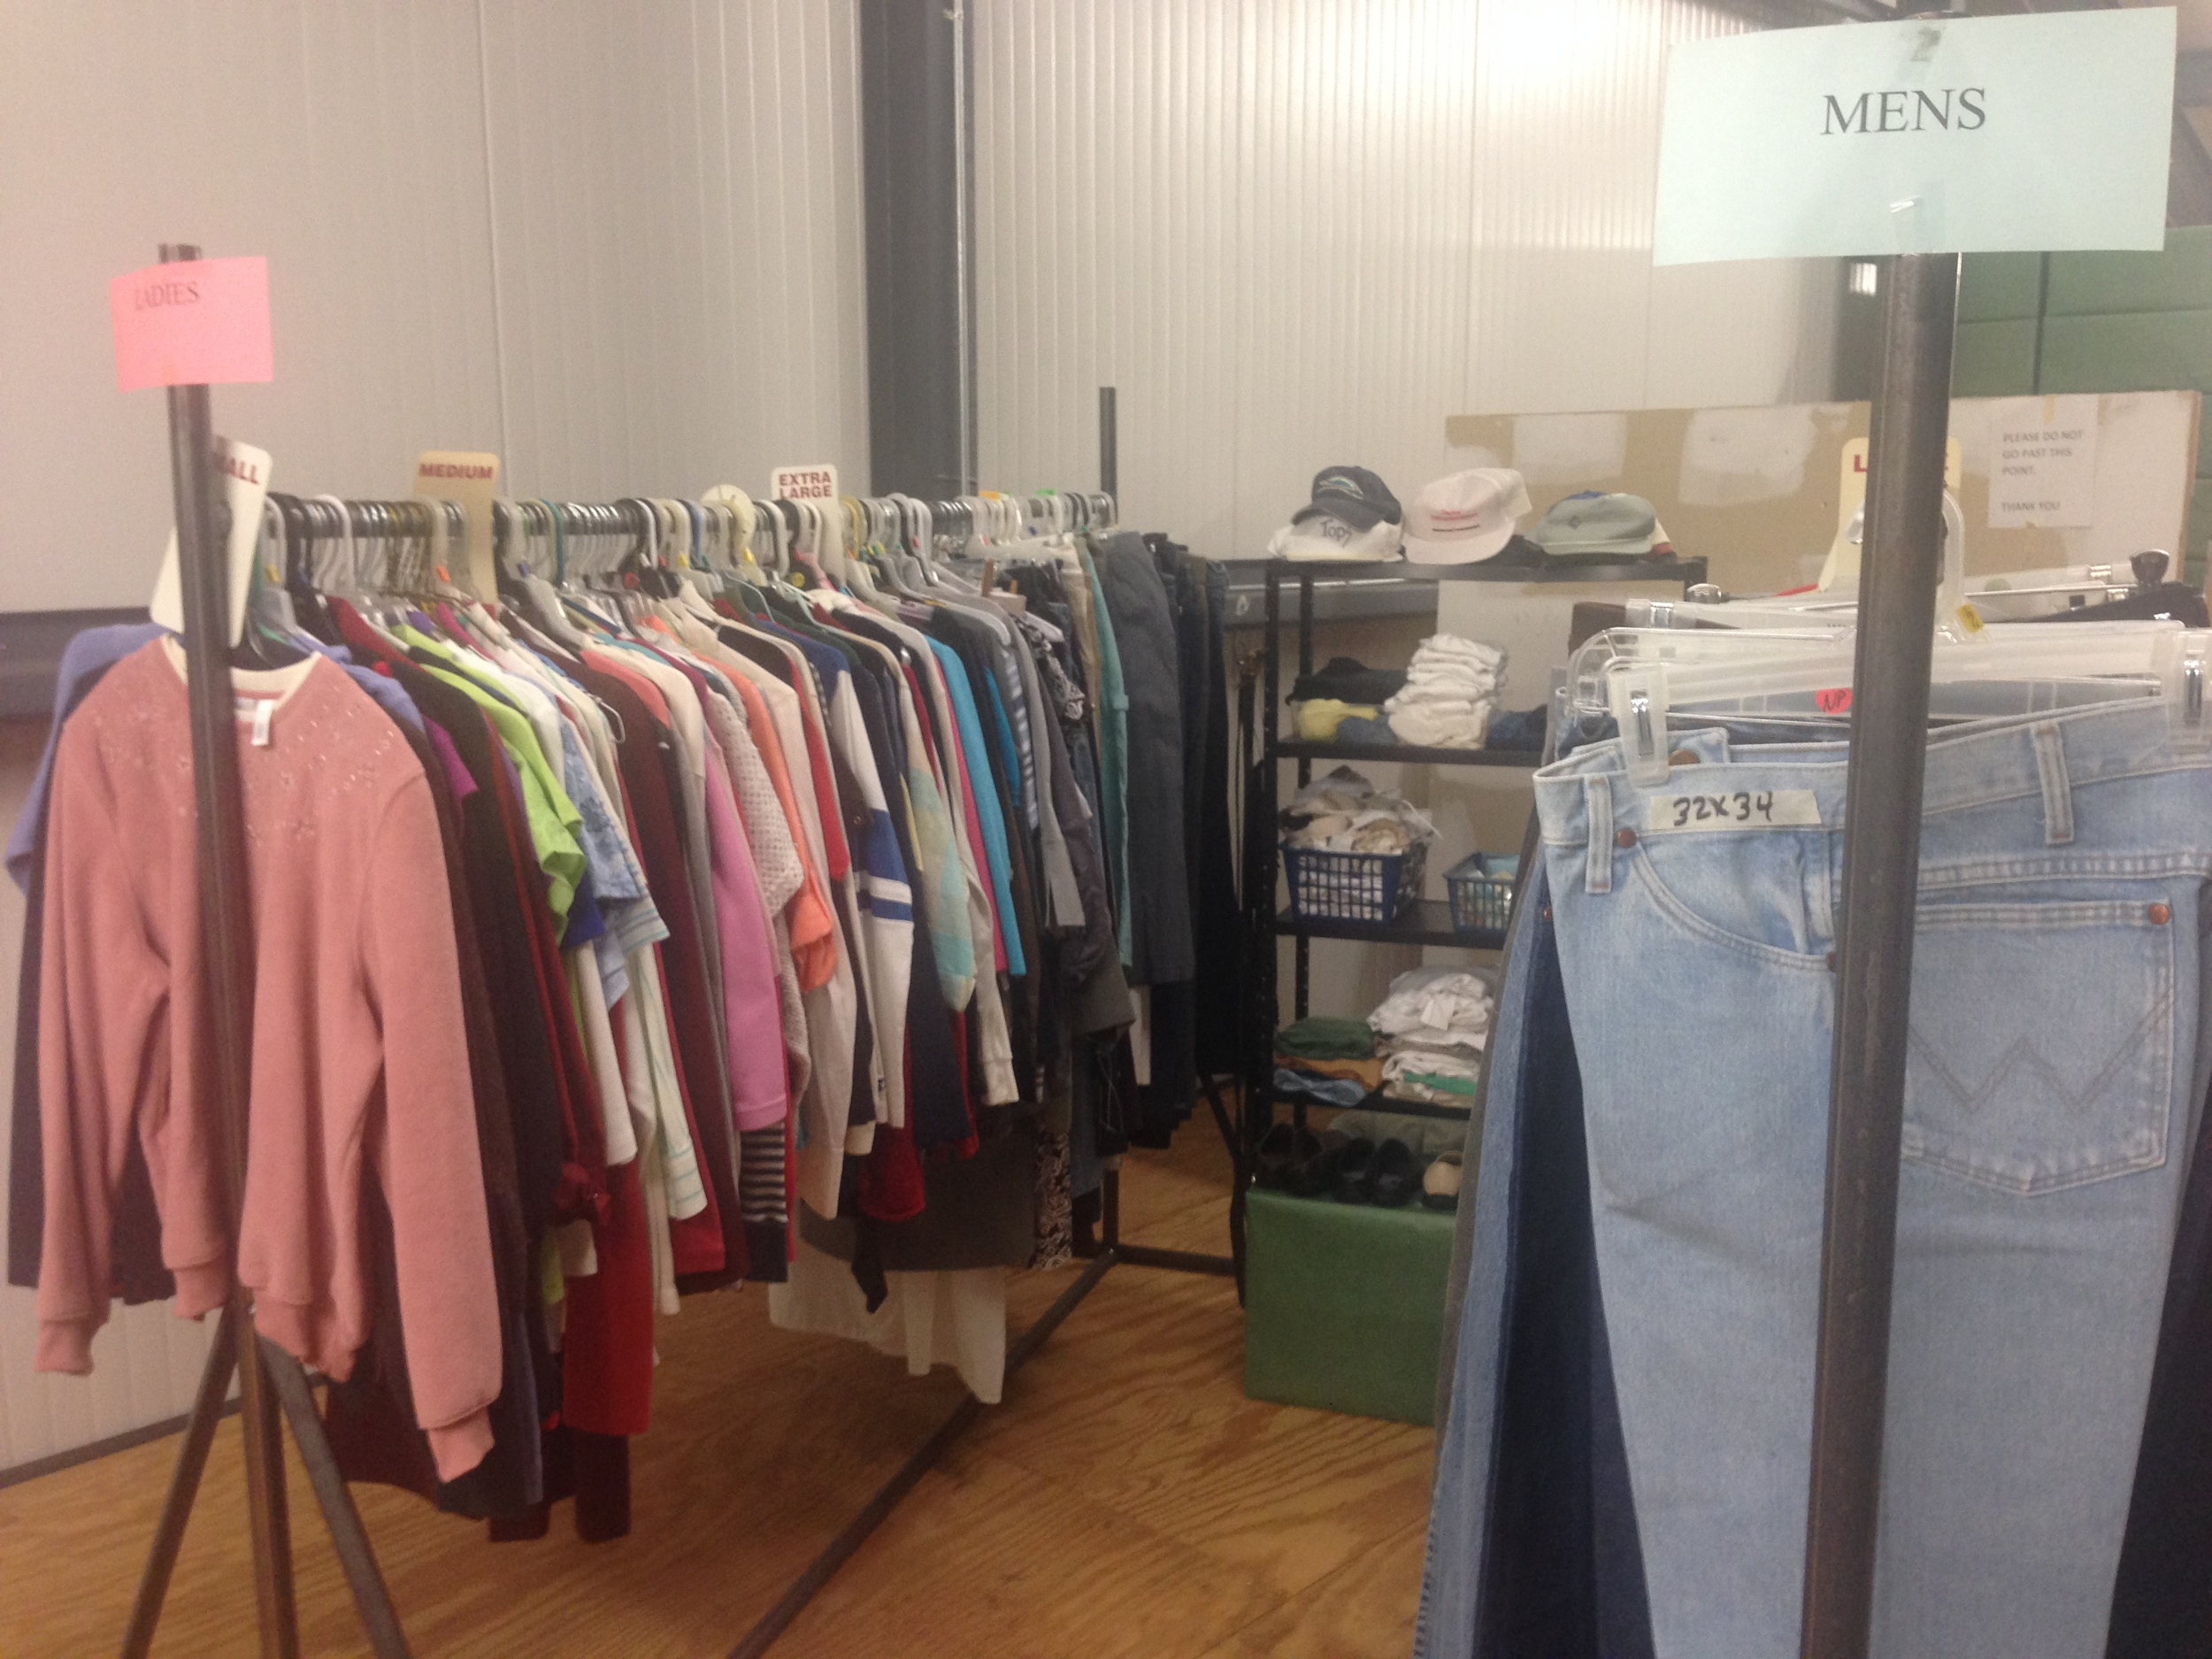 Clothes Closet - mostly winter clothes and shoes for adult men and women. Usually open when we have our meal ministry.